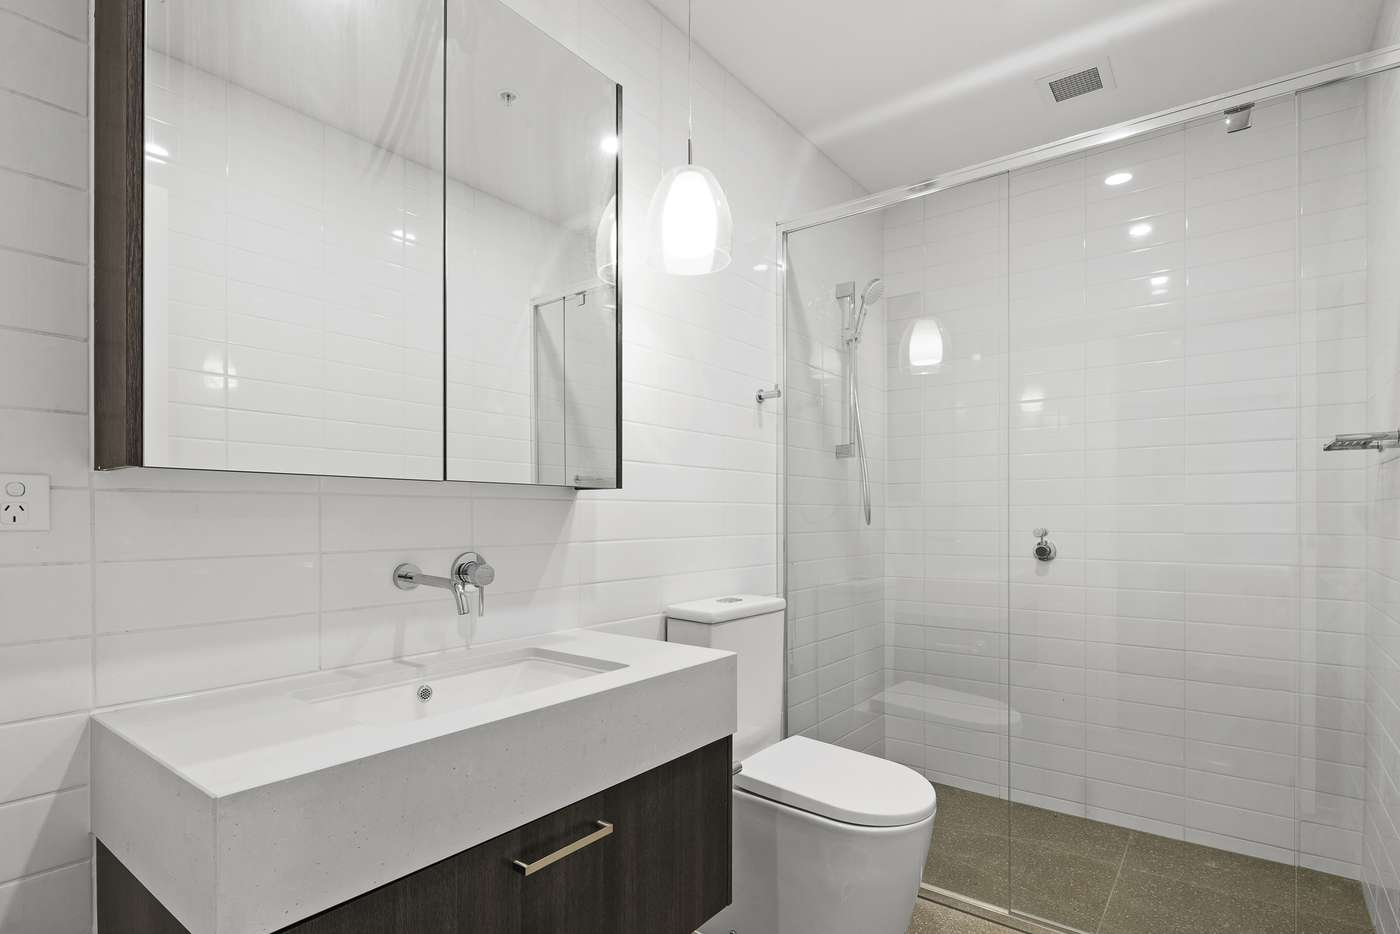 Sixth view of Homely apartment listing, Unit 107/817 Centre Rd, Bentleigh East VIC 3165